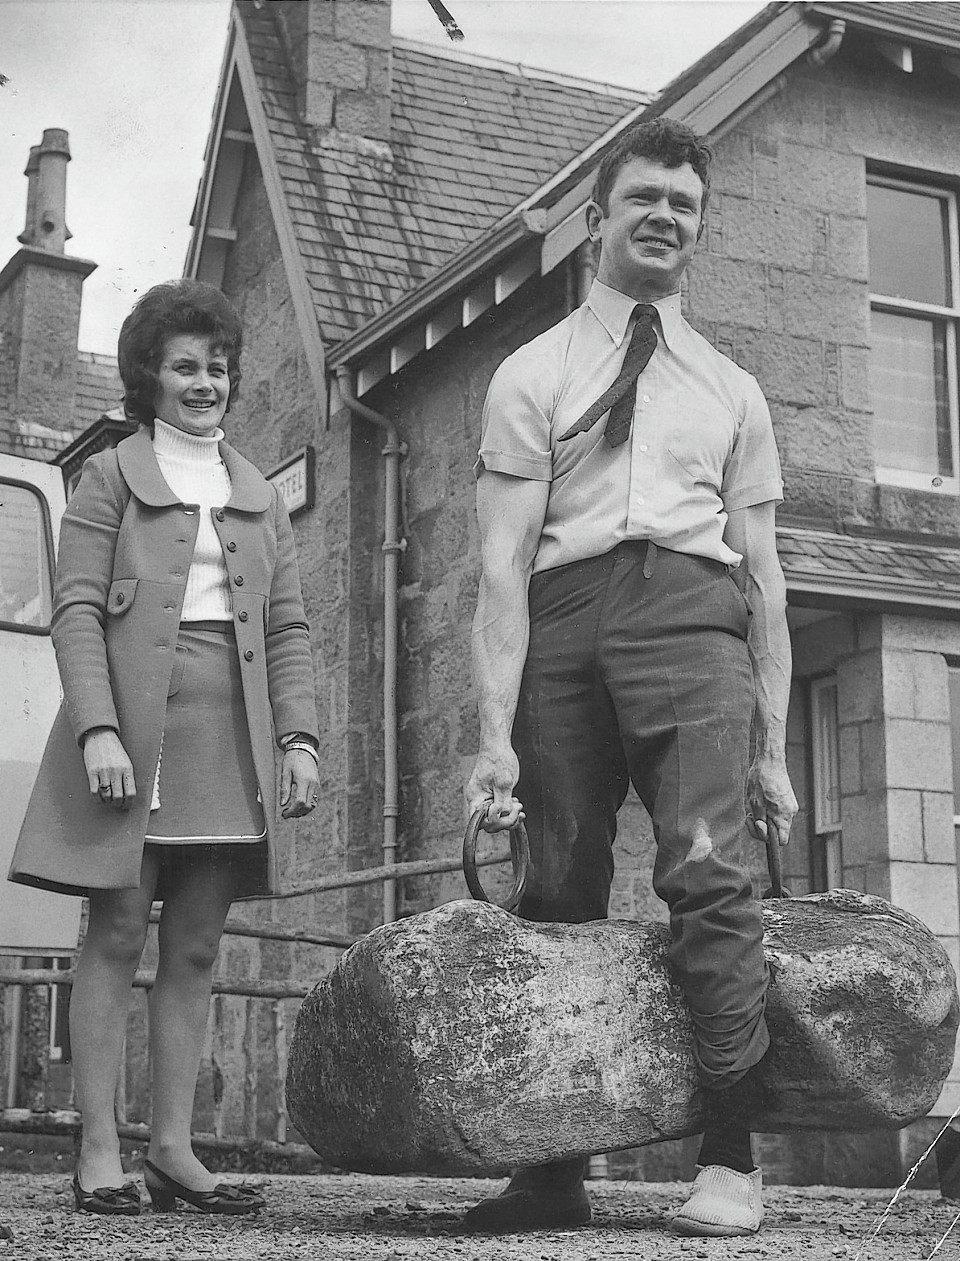 Jack Shanks with wife, Joyce, lifting the Dinnie Steens unsupported in 1972 - the first to do so since Donald Dinnie himself in 1860.